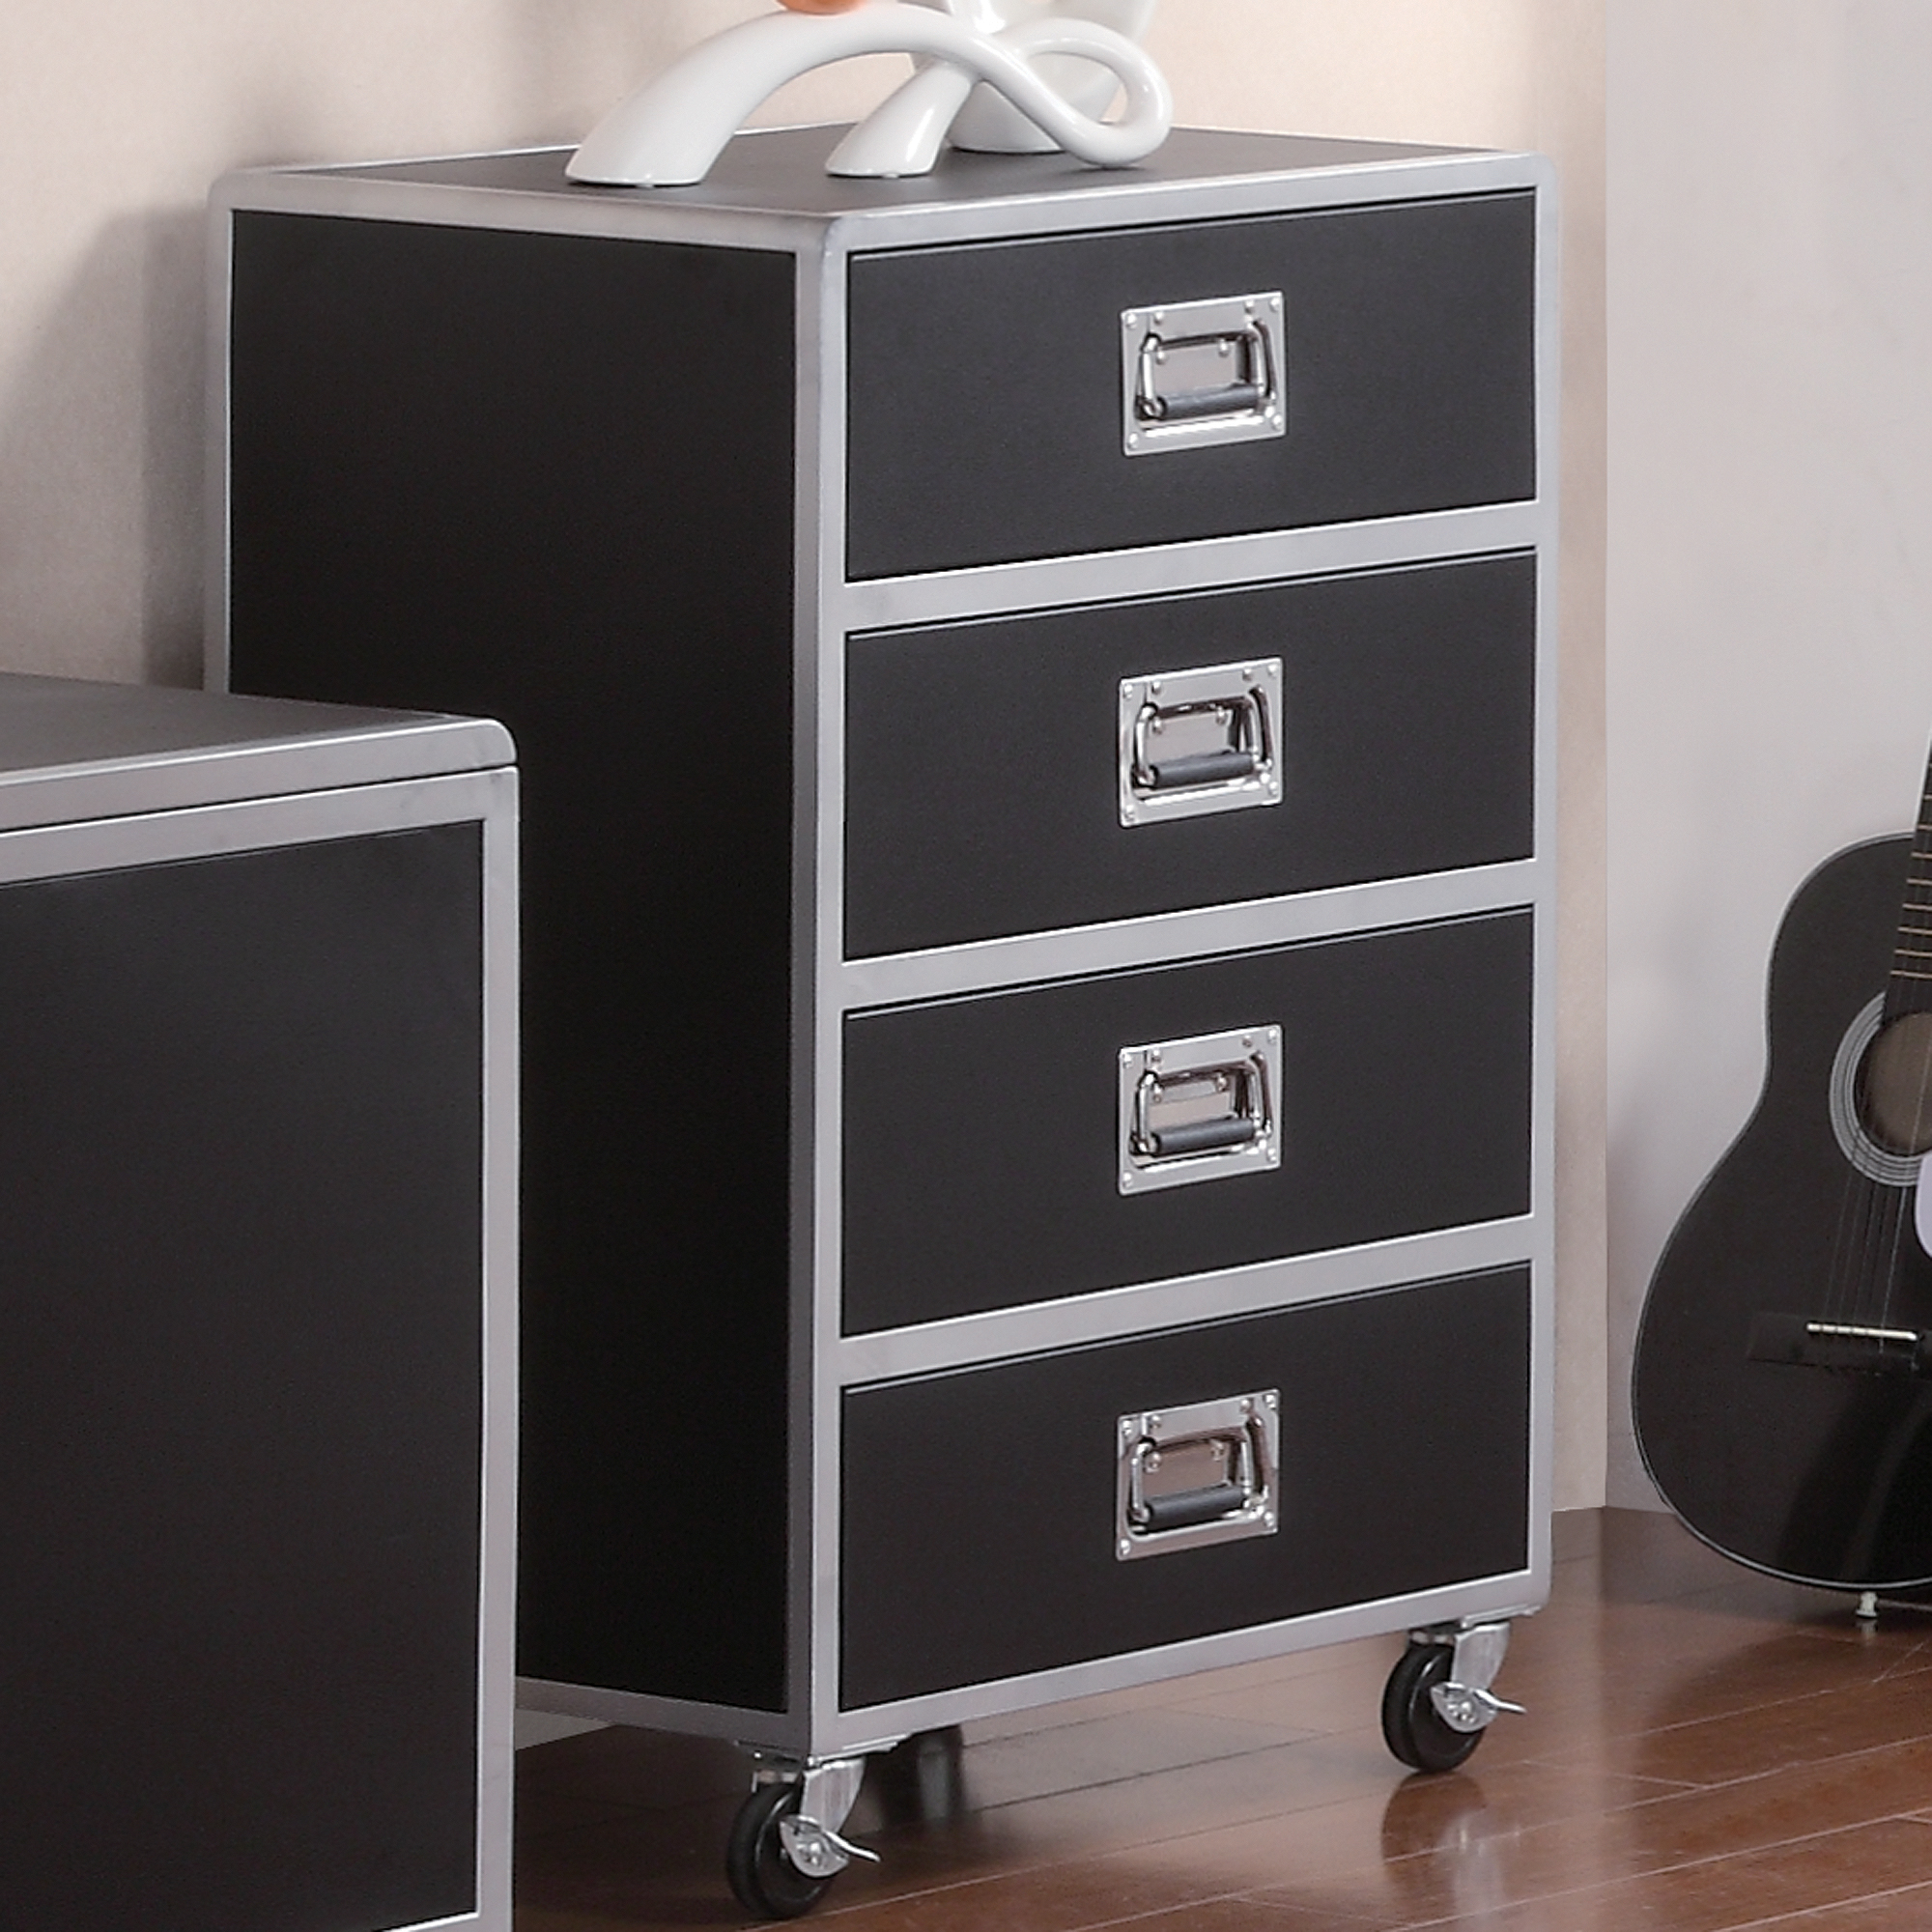 Coaster Company LeClair 4 Drawer Chest, Black/Silver Metal